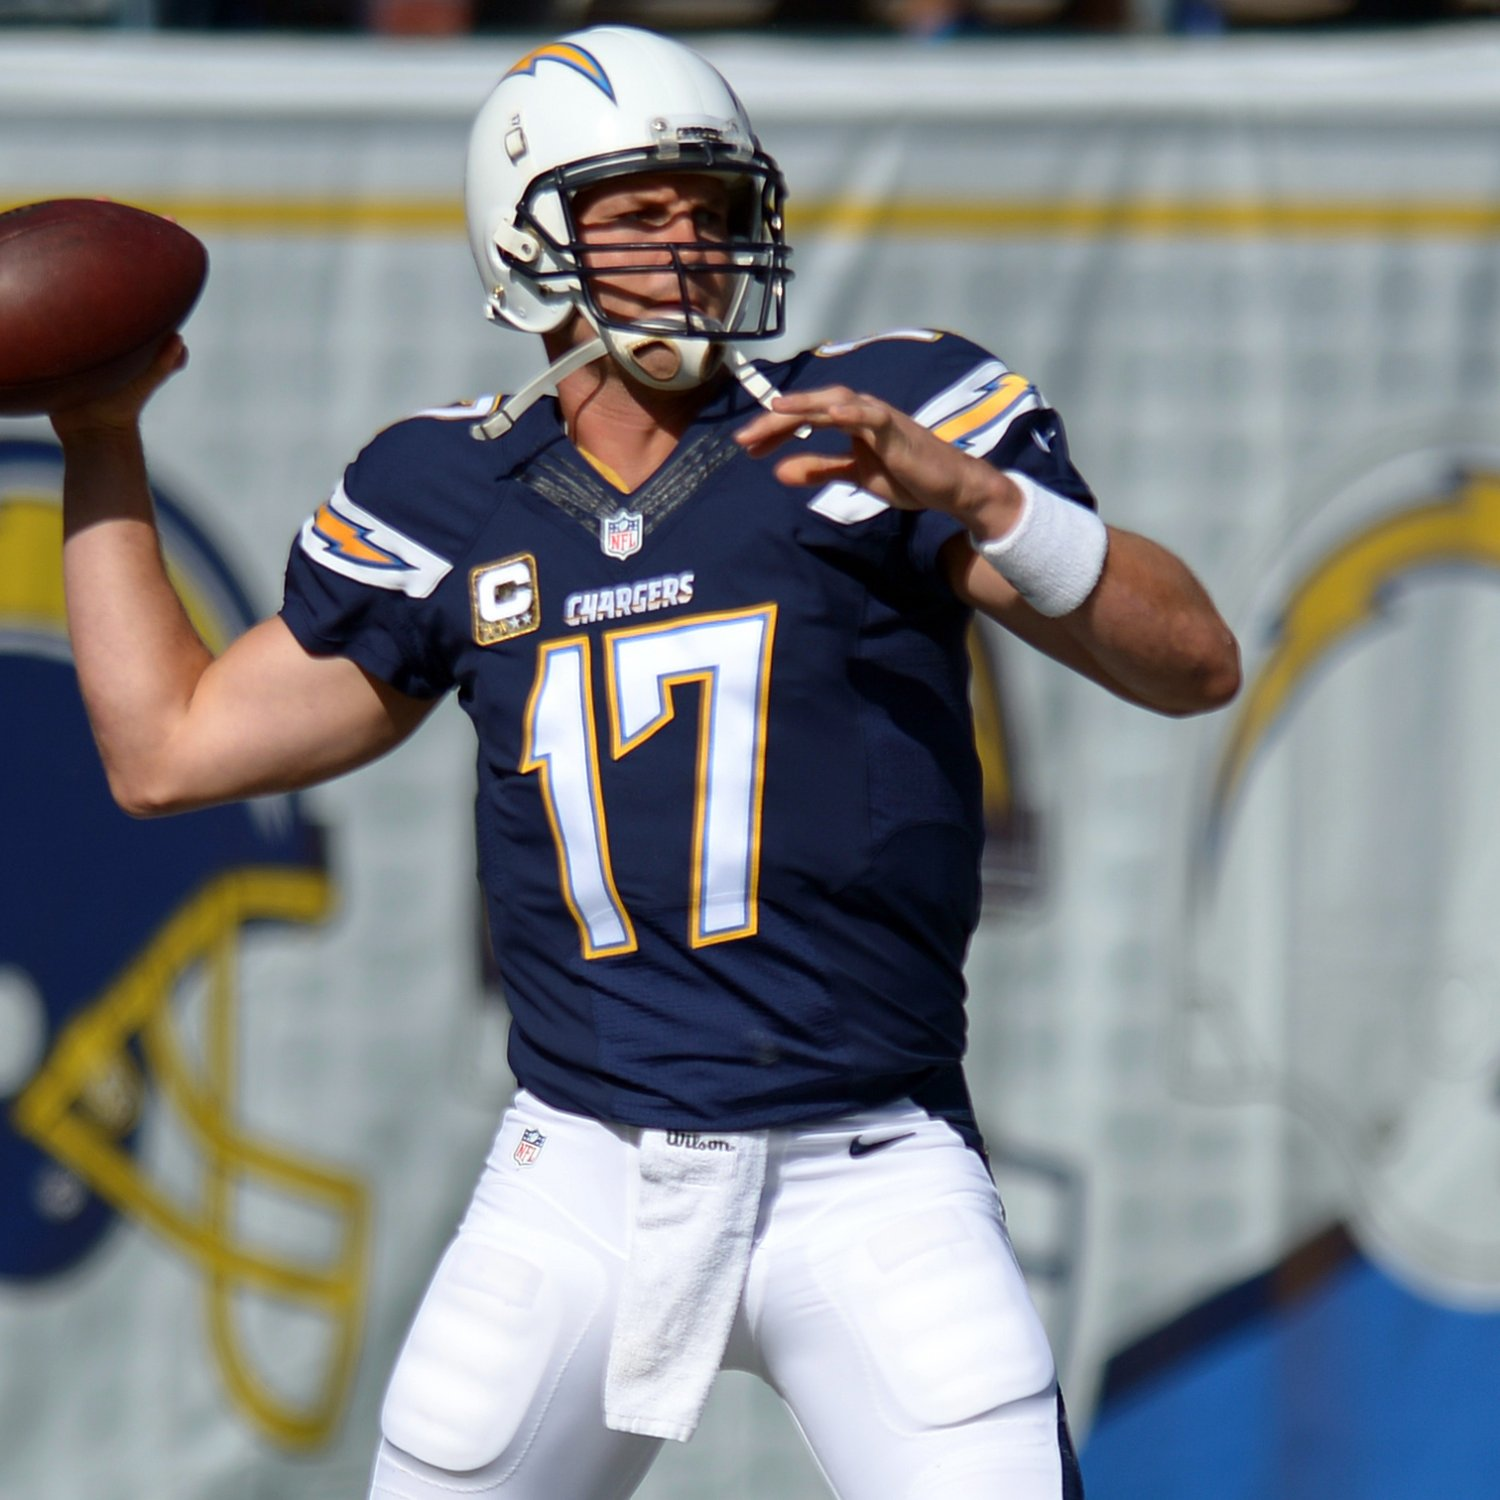 San Diego Chargers Broadcast: St. Louis Rams Vs. San Diego Chargers: Live San Diego